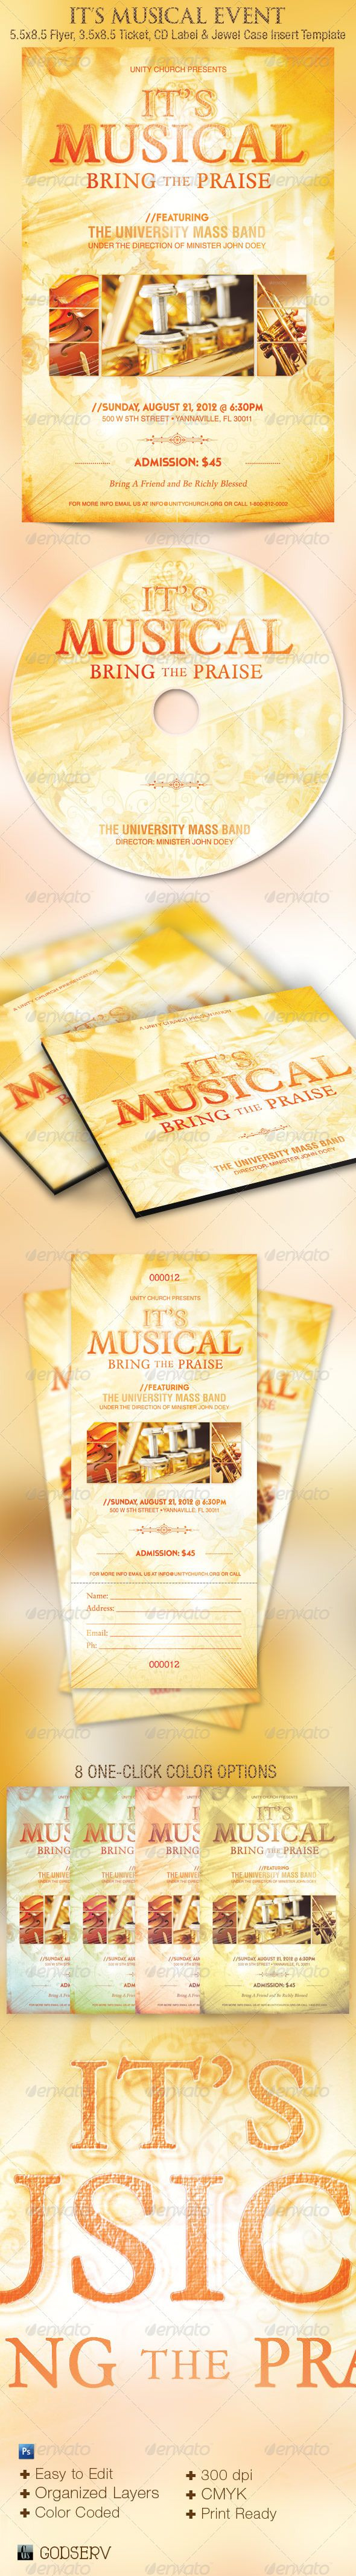 Its Musical Event Flyer, Ticket and CD Template - The It's Musical Event Flyer, Ticket and CD Template is geared towards usage for any kind of church musical or drama events. Use it for Musical Concerts, Choir Concert, Solo Artist Concert, Gospel Fundraising Concerts and more.  - Price $7.00